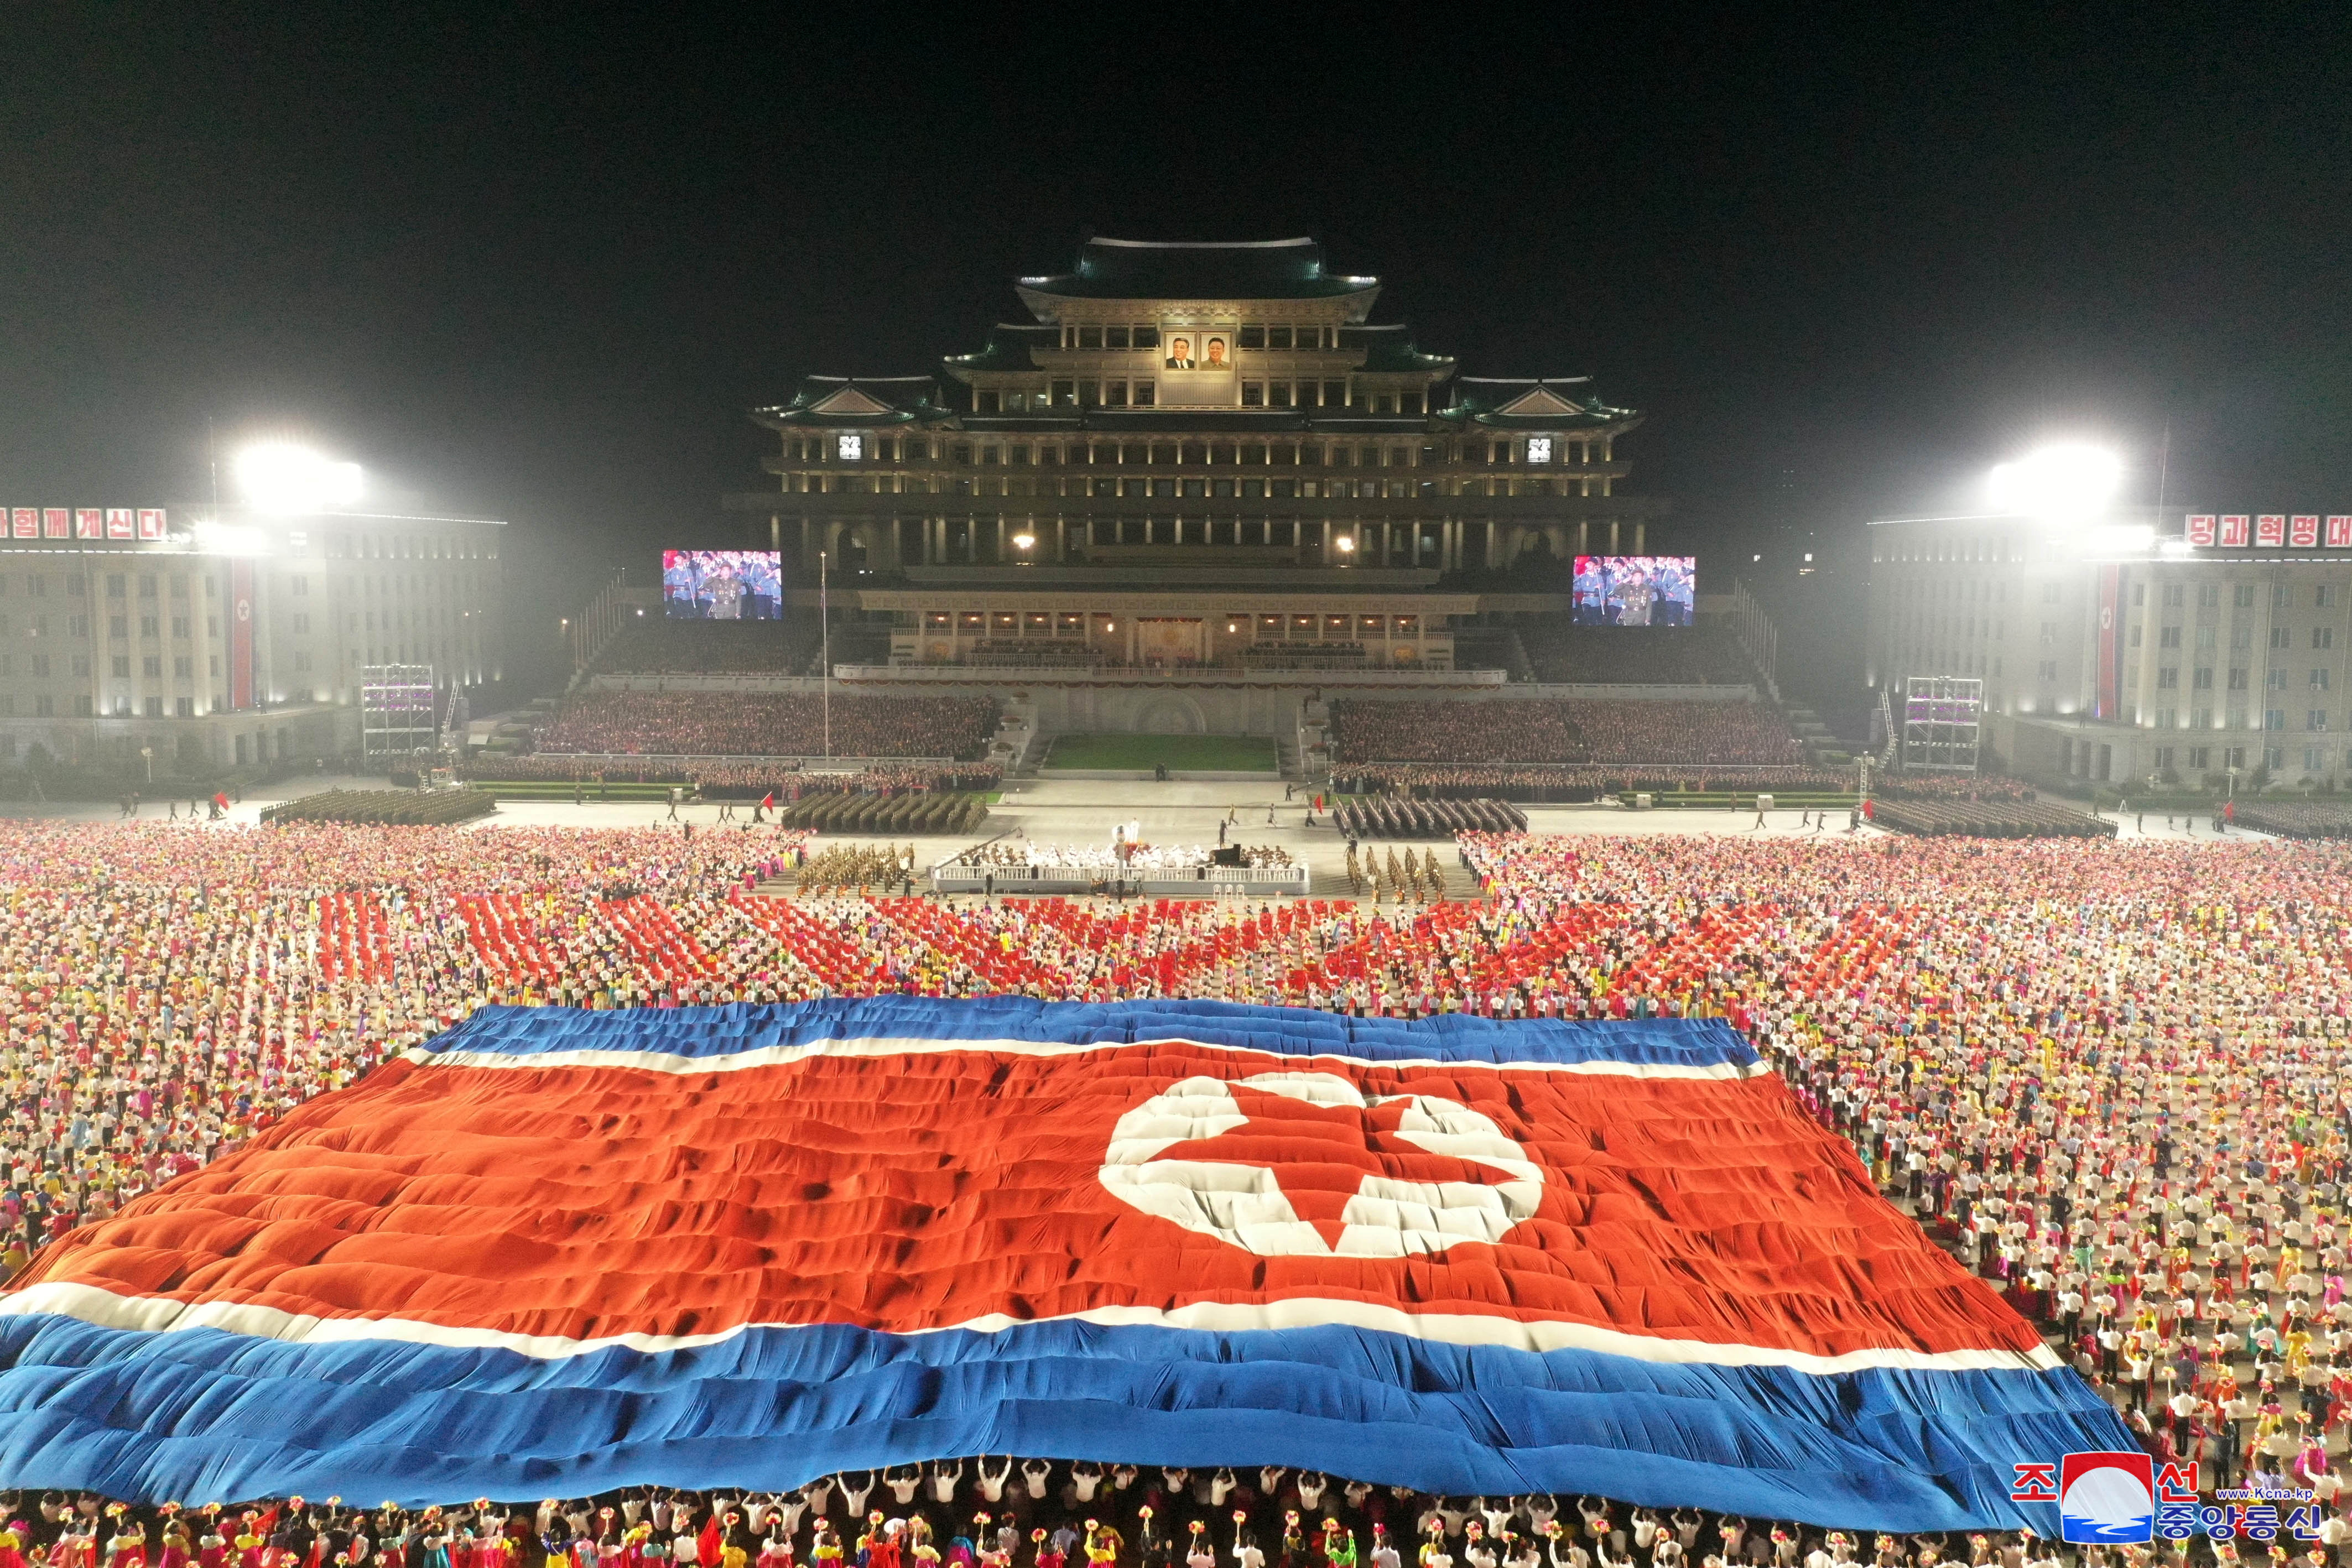 A giant North Korean flag is unhurled during a paramilitary parade held to mark the 73rd founding anniversary of the republic at Kim Il Sung square in Pyongyang in this undated image supplied by North Korea's Korean Central News Agency on September 9, 2021. KCNA via REUTERS